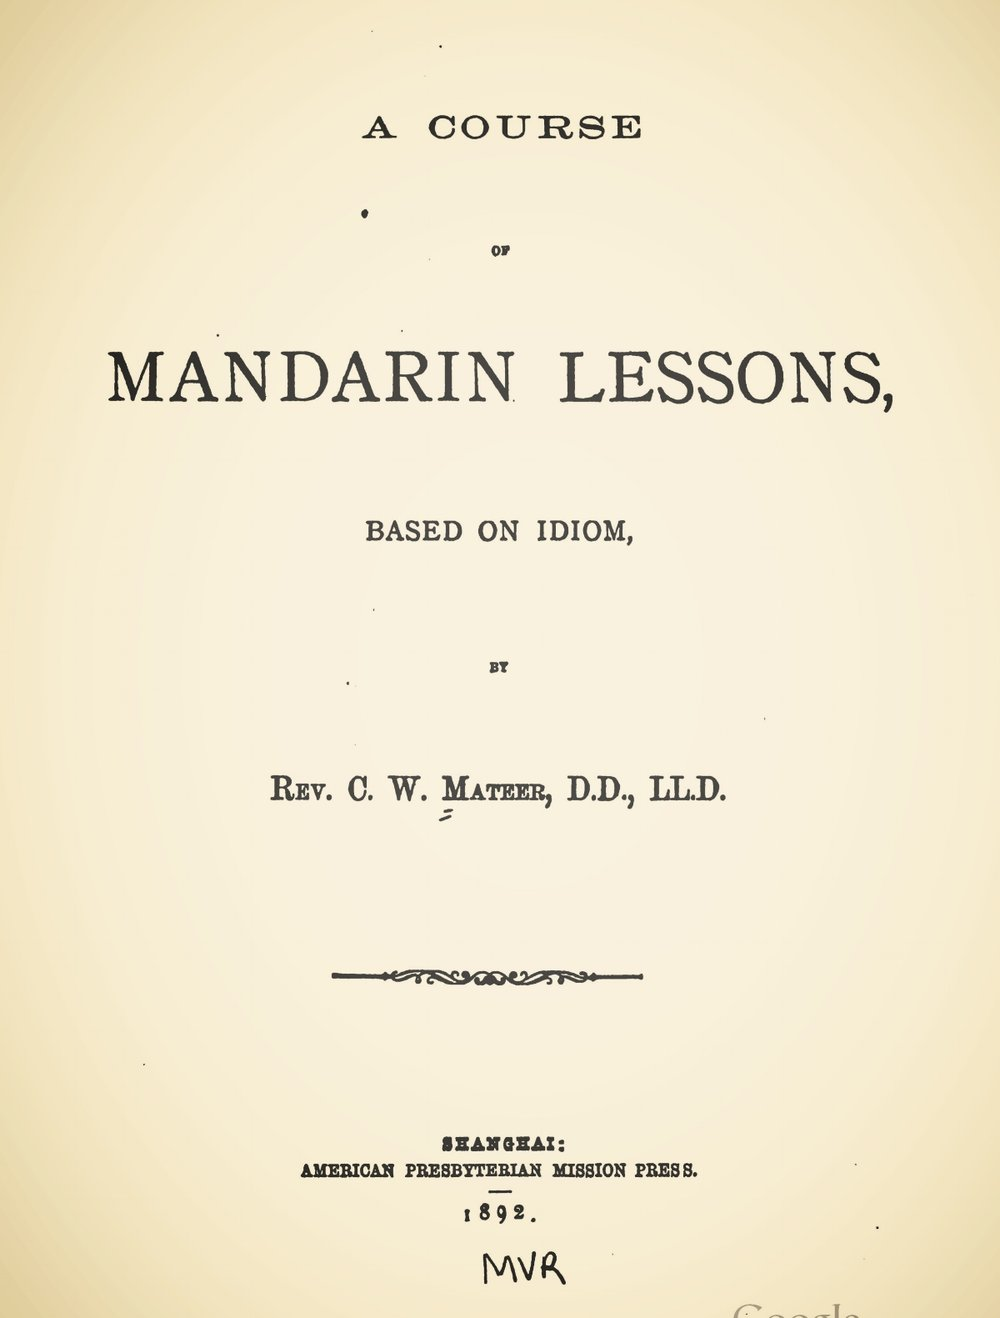 Mateer, Calvin Wilson, A Course of Mandarin Lessons, Based on Idiom Title Page.jpg